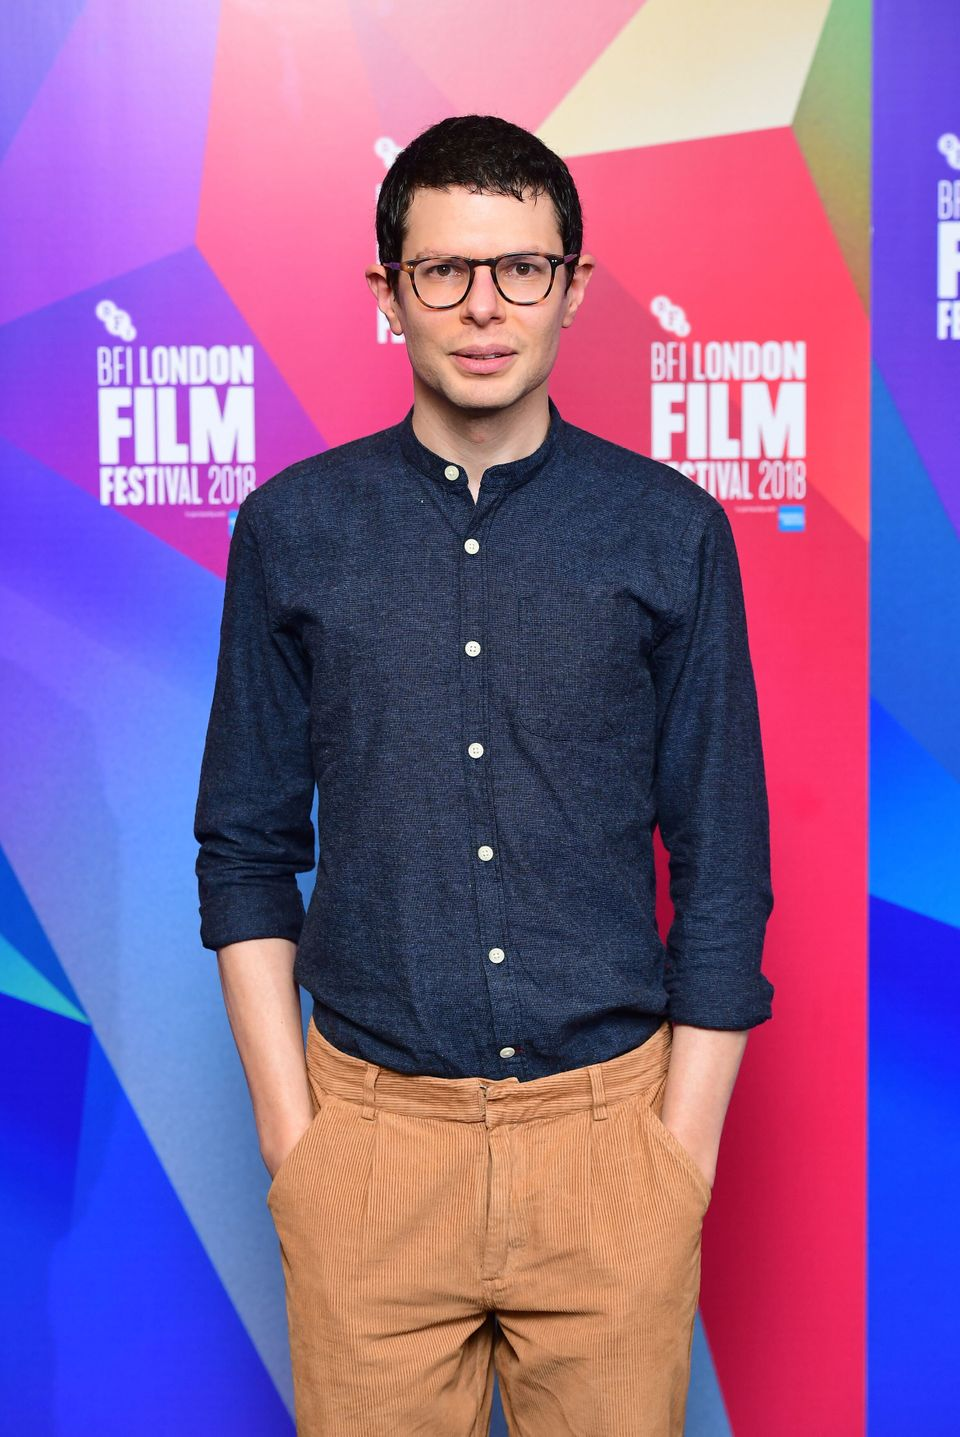 Simon's first feature-length film Set Free debuted at the London Film Festival last